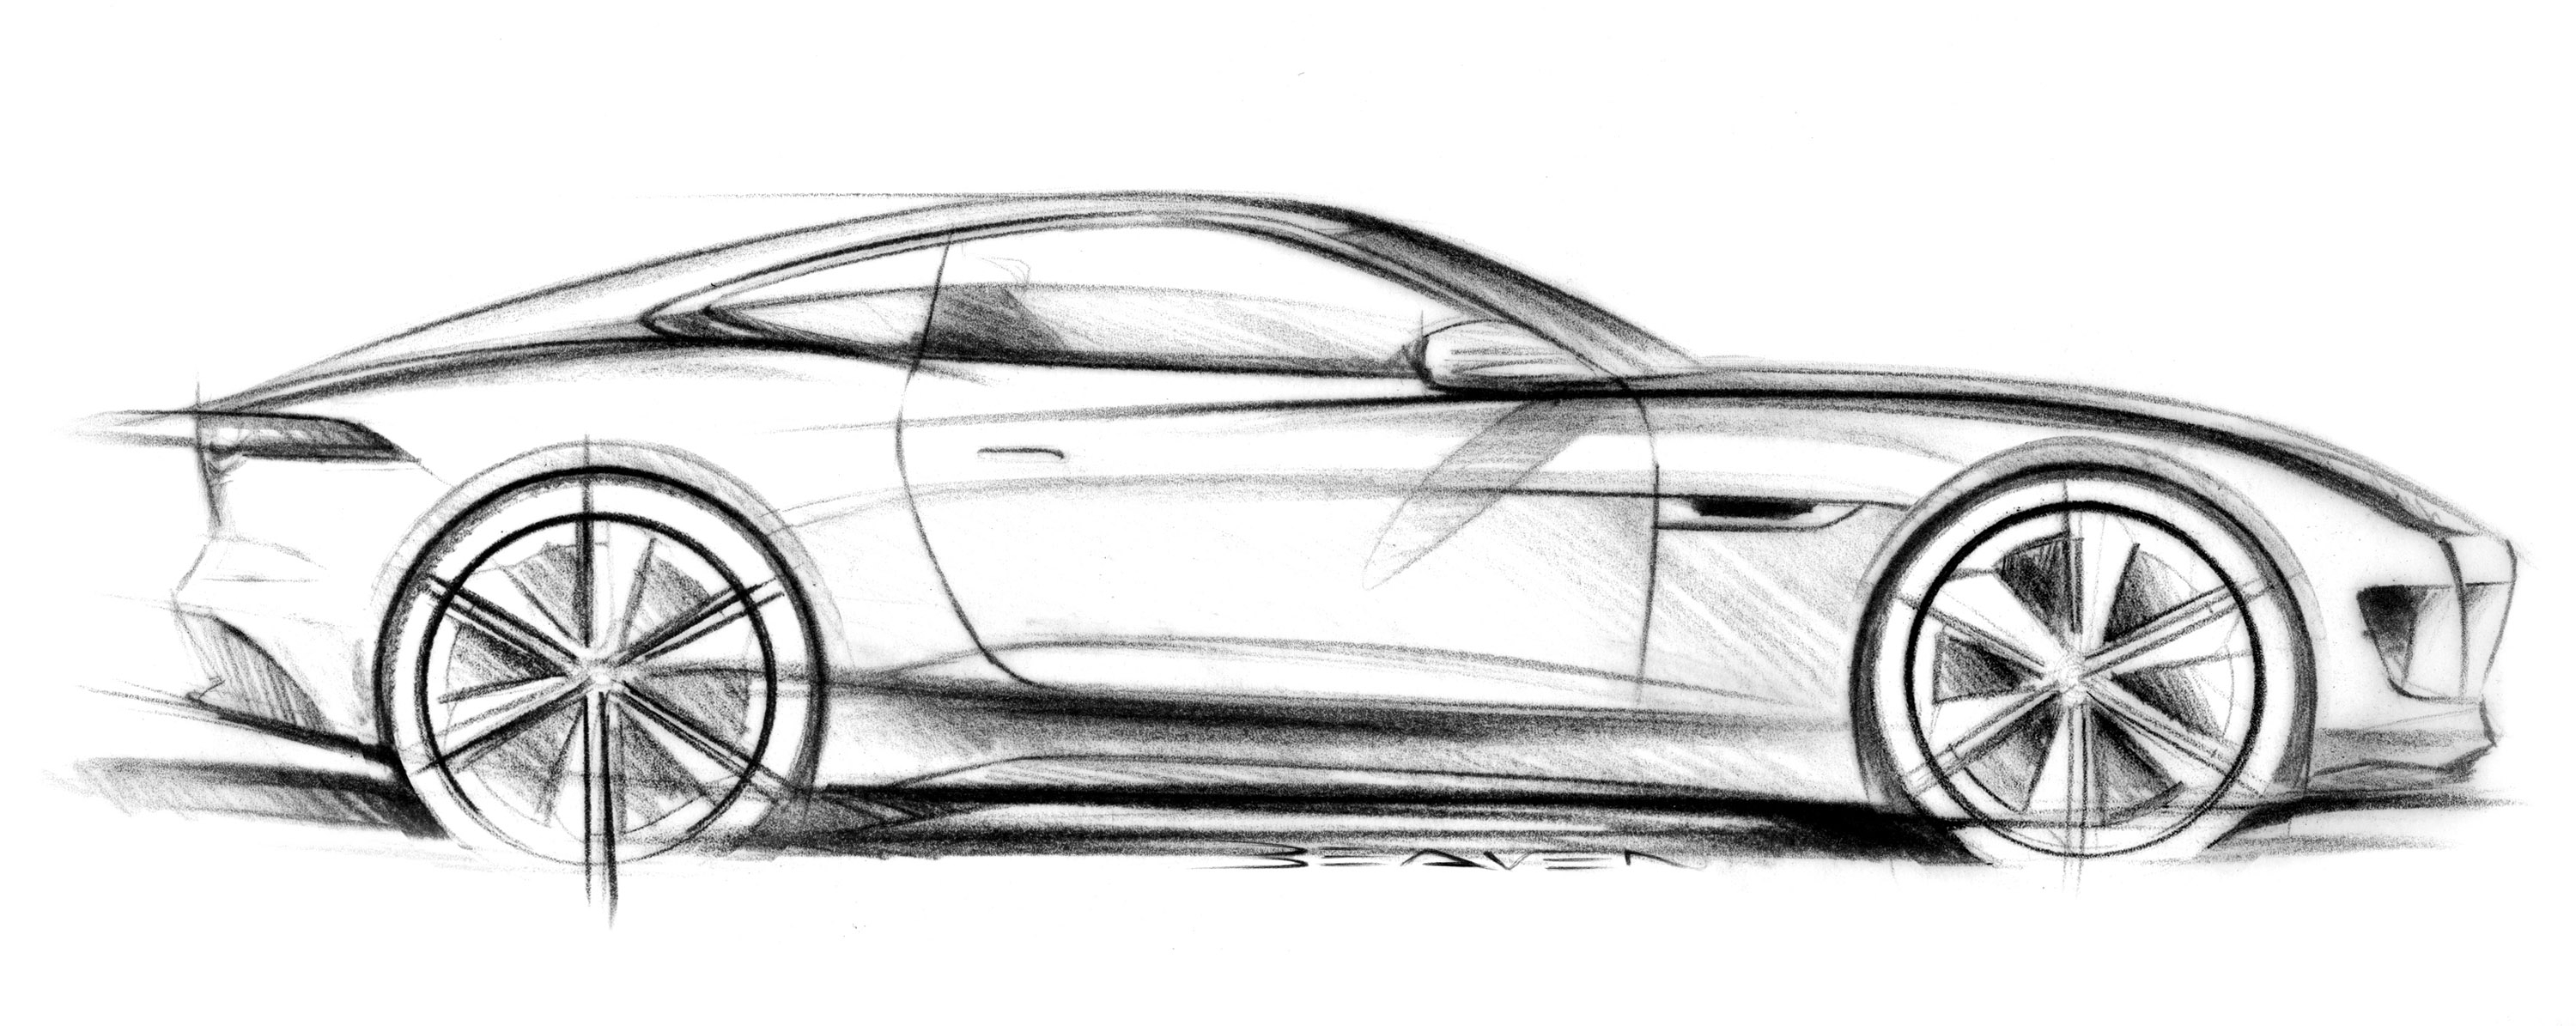 3000x1195 pencil sketch shading car car pencil sketch pictures car pencil